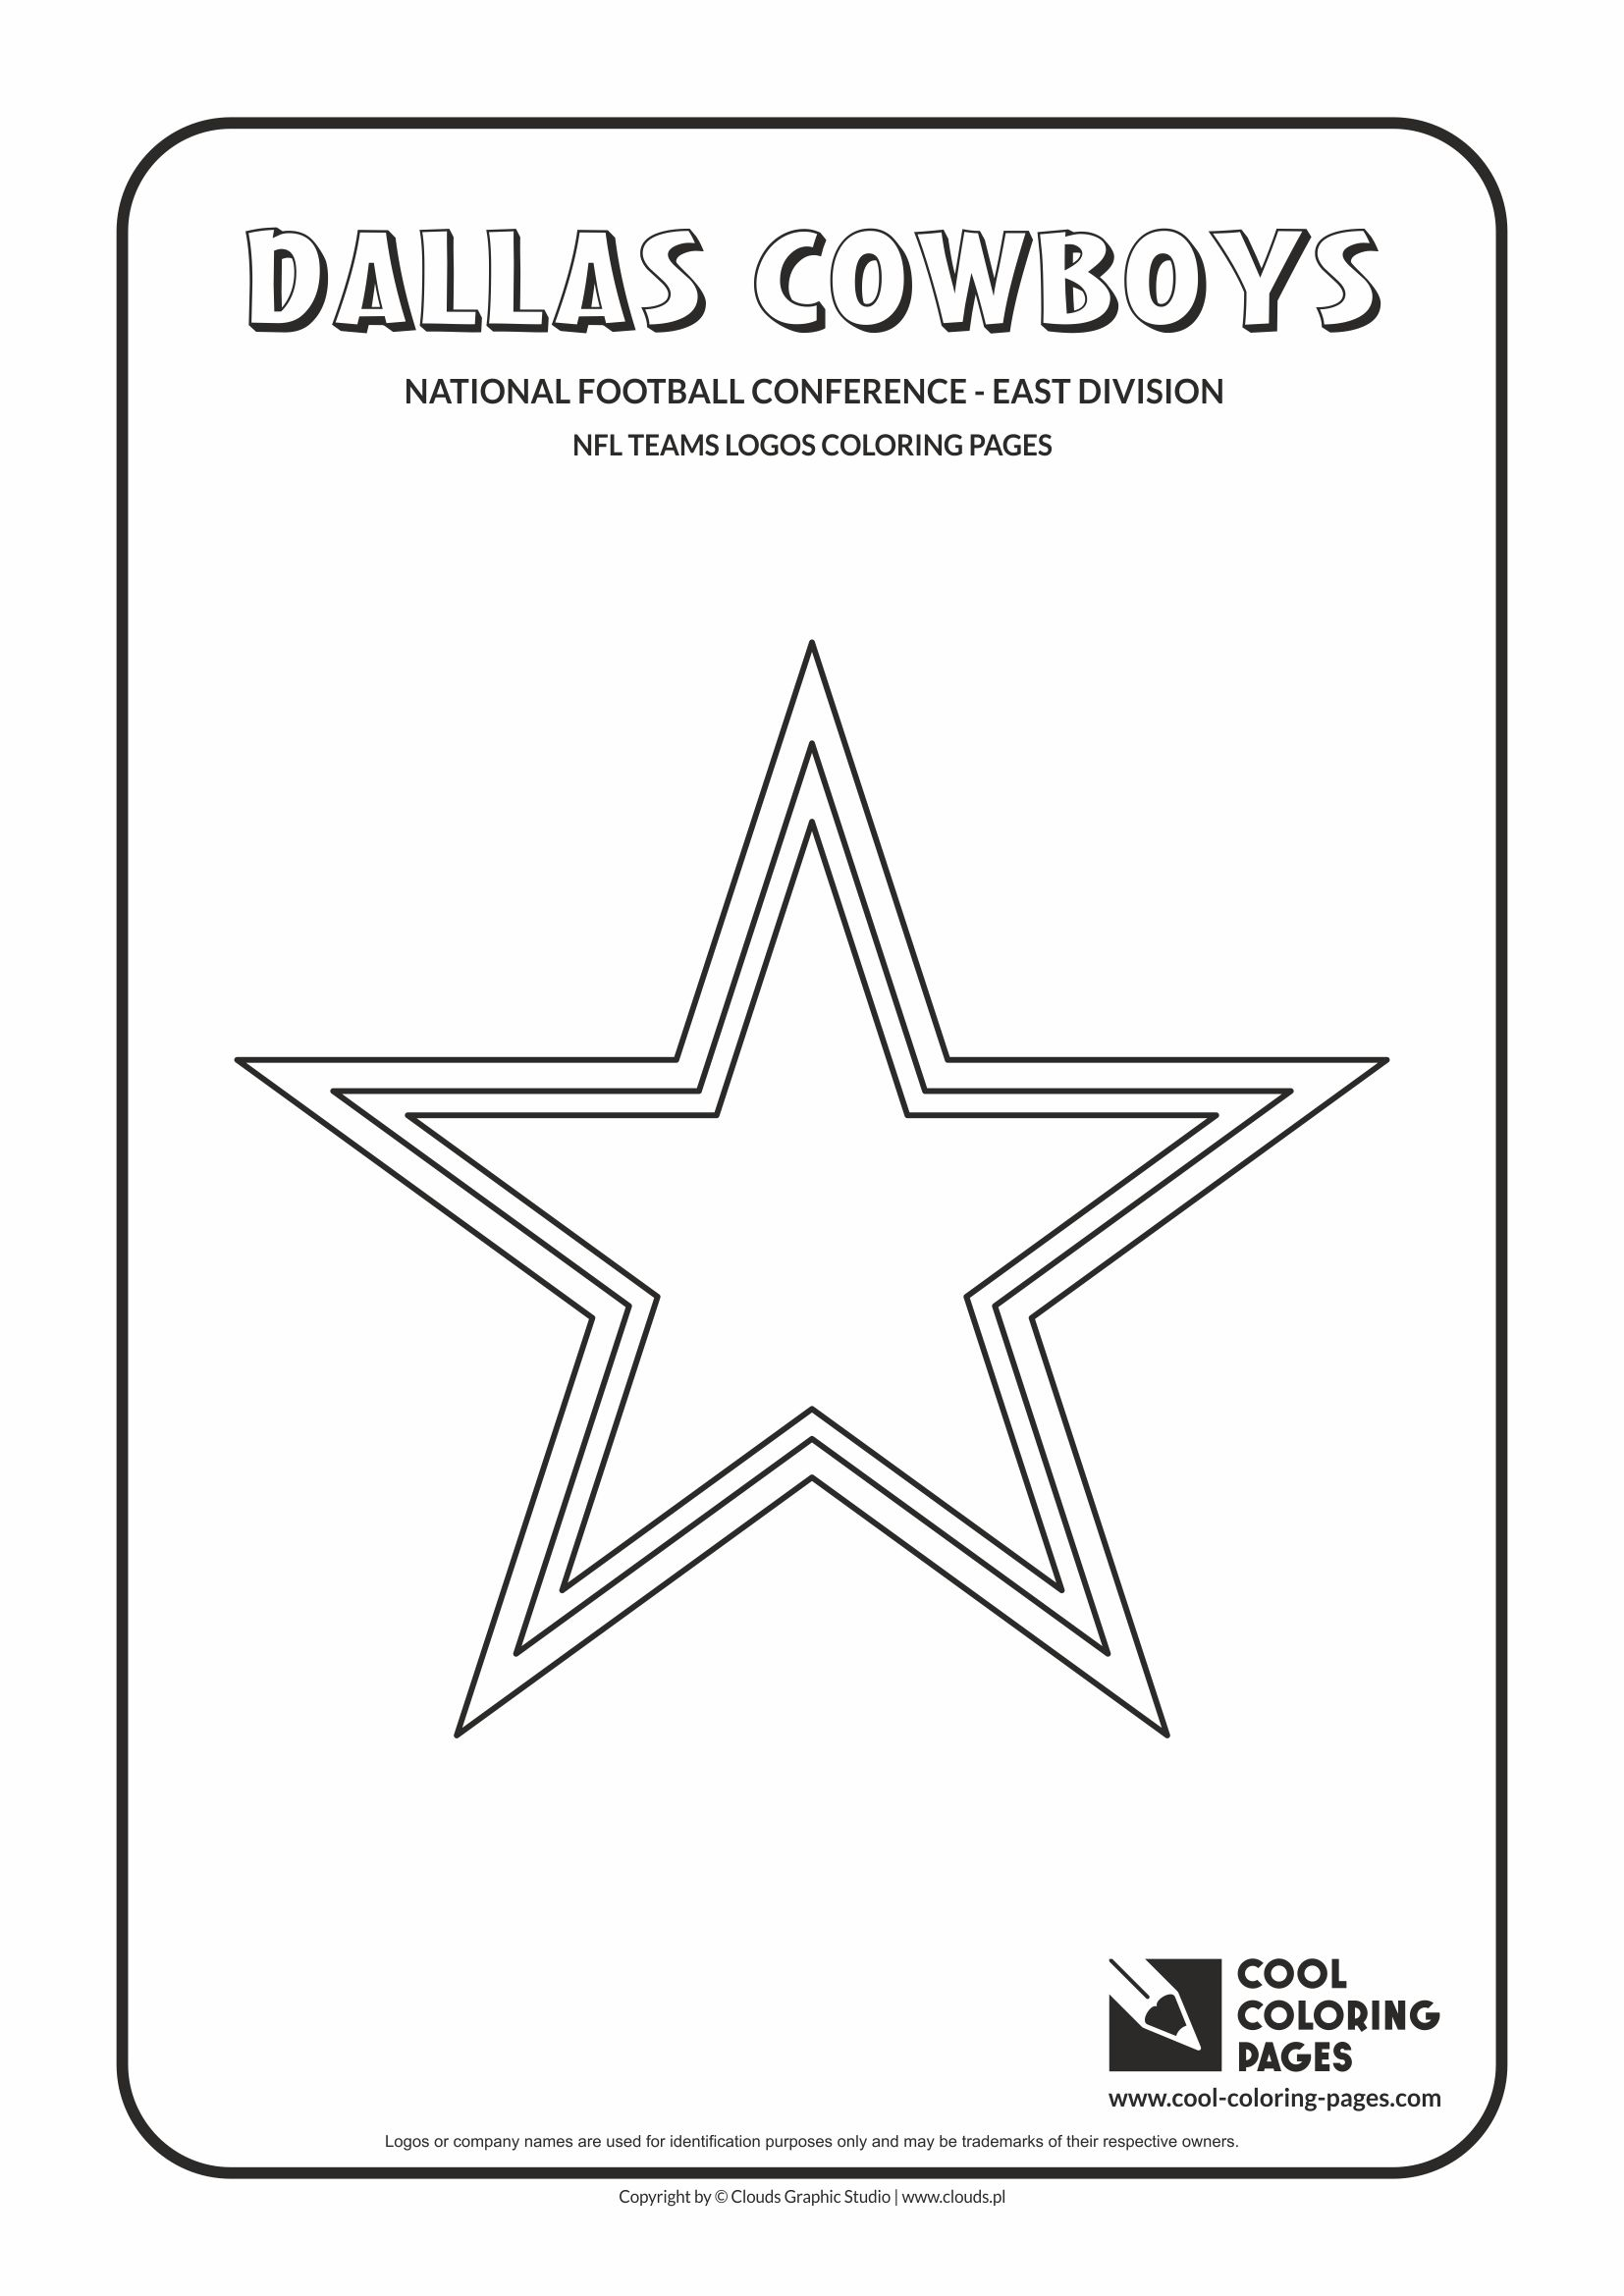 Cool Coloring Pages - NFL American Football Clubs Logos - National Football Conference - East Division / Dallas Cowboys logo / Coloring page with Dallas Cowboys logo